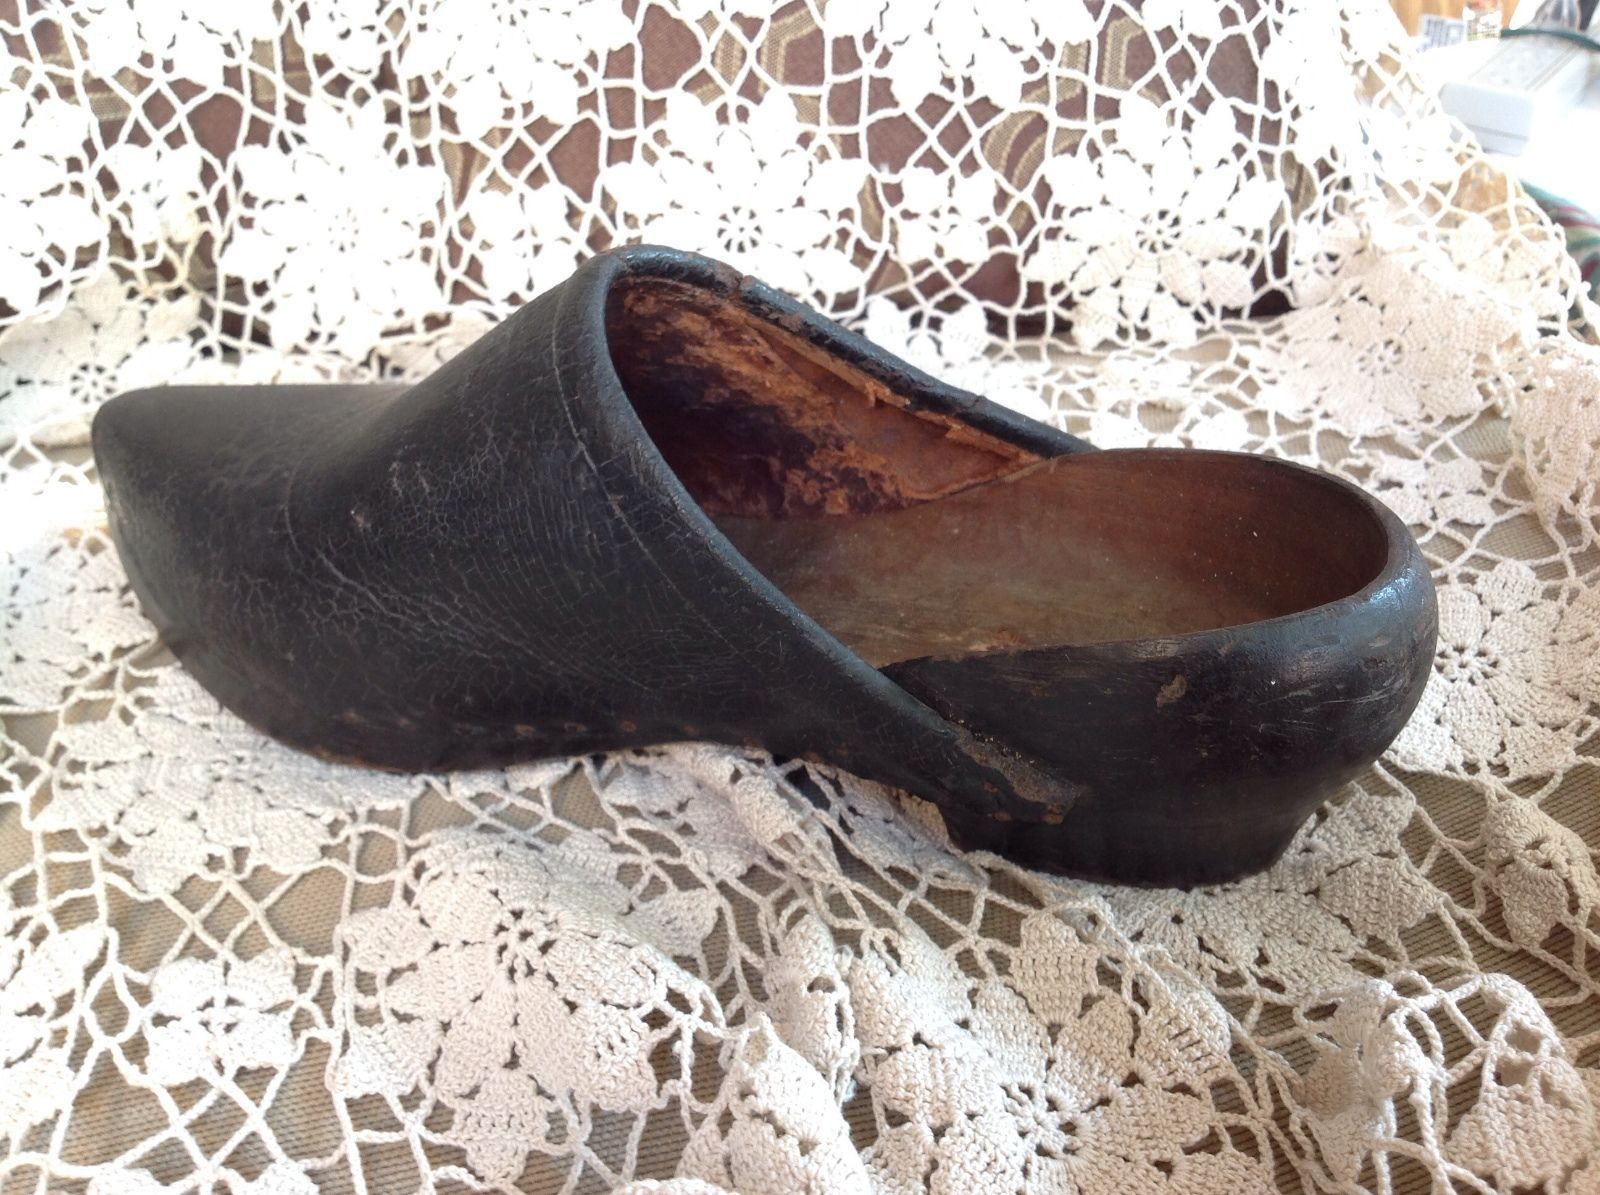 7dac17526f41a Vintage French Wooden Clogs Sabots Embossed Leather Uppers 1800s ...